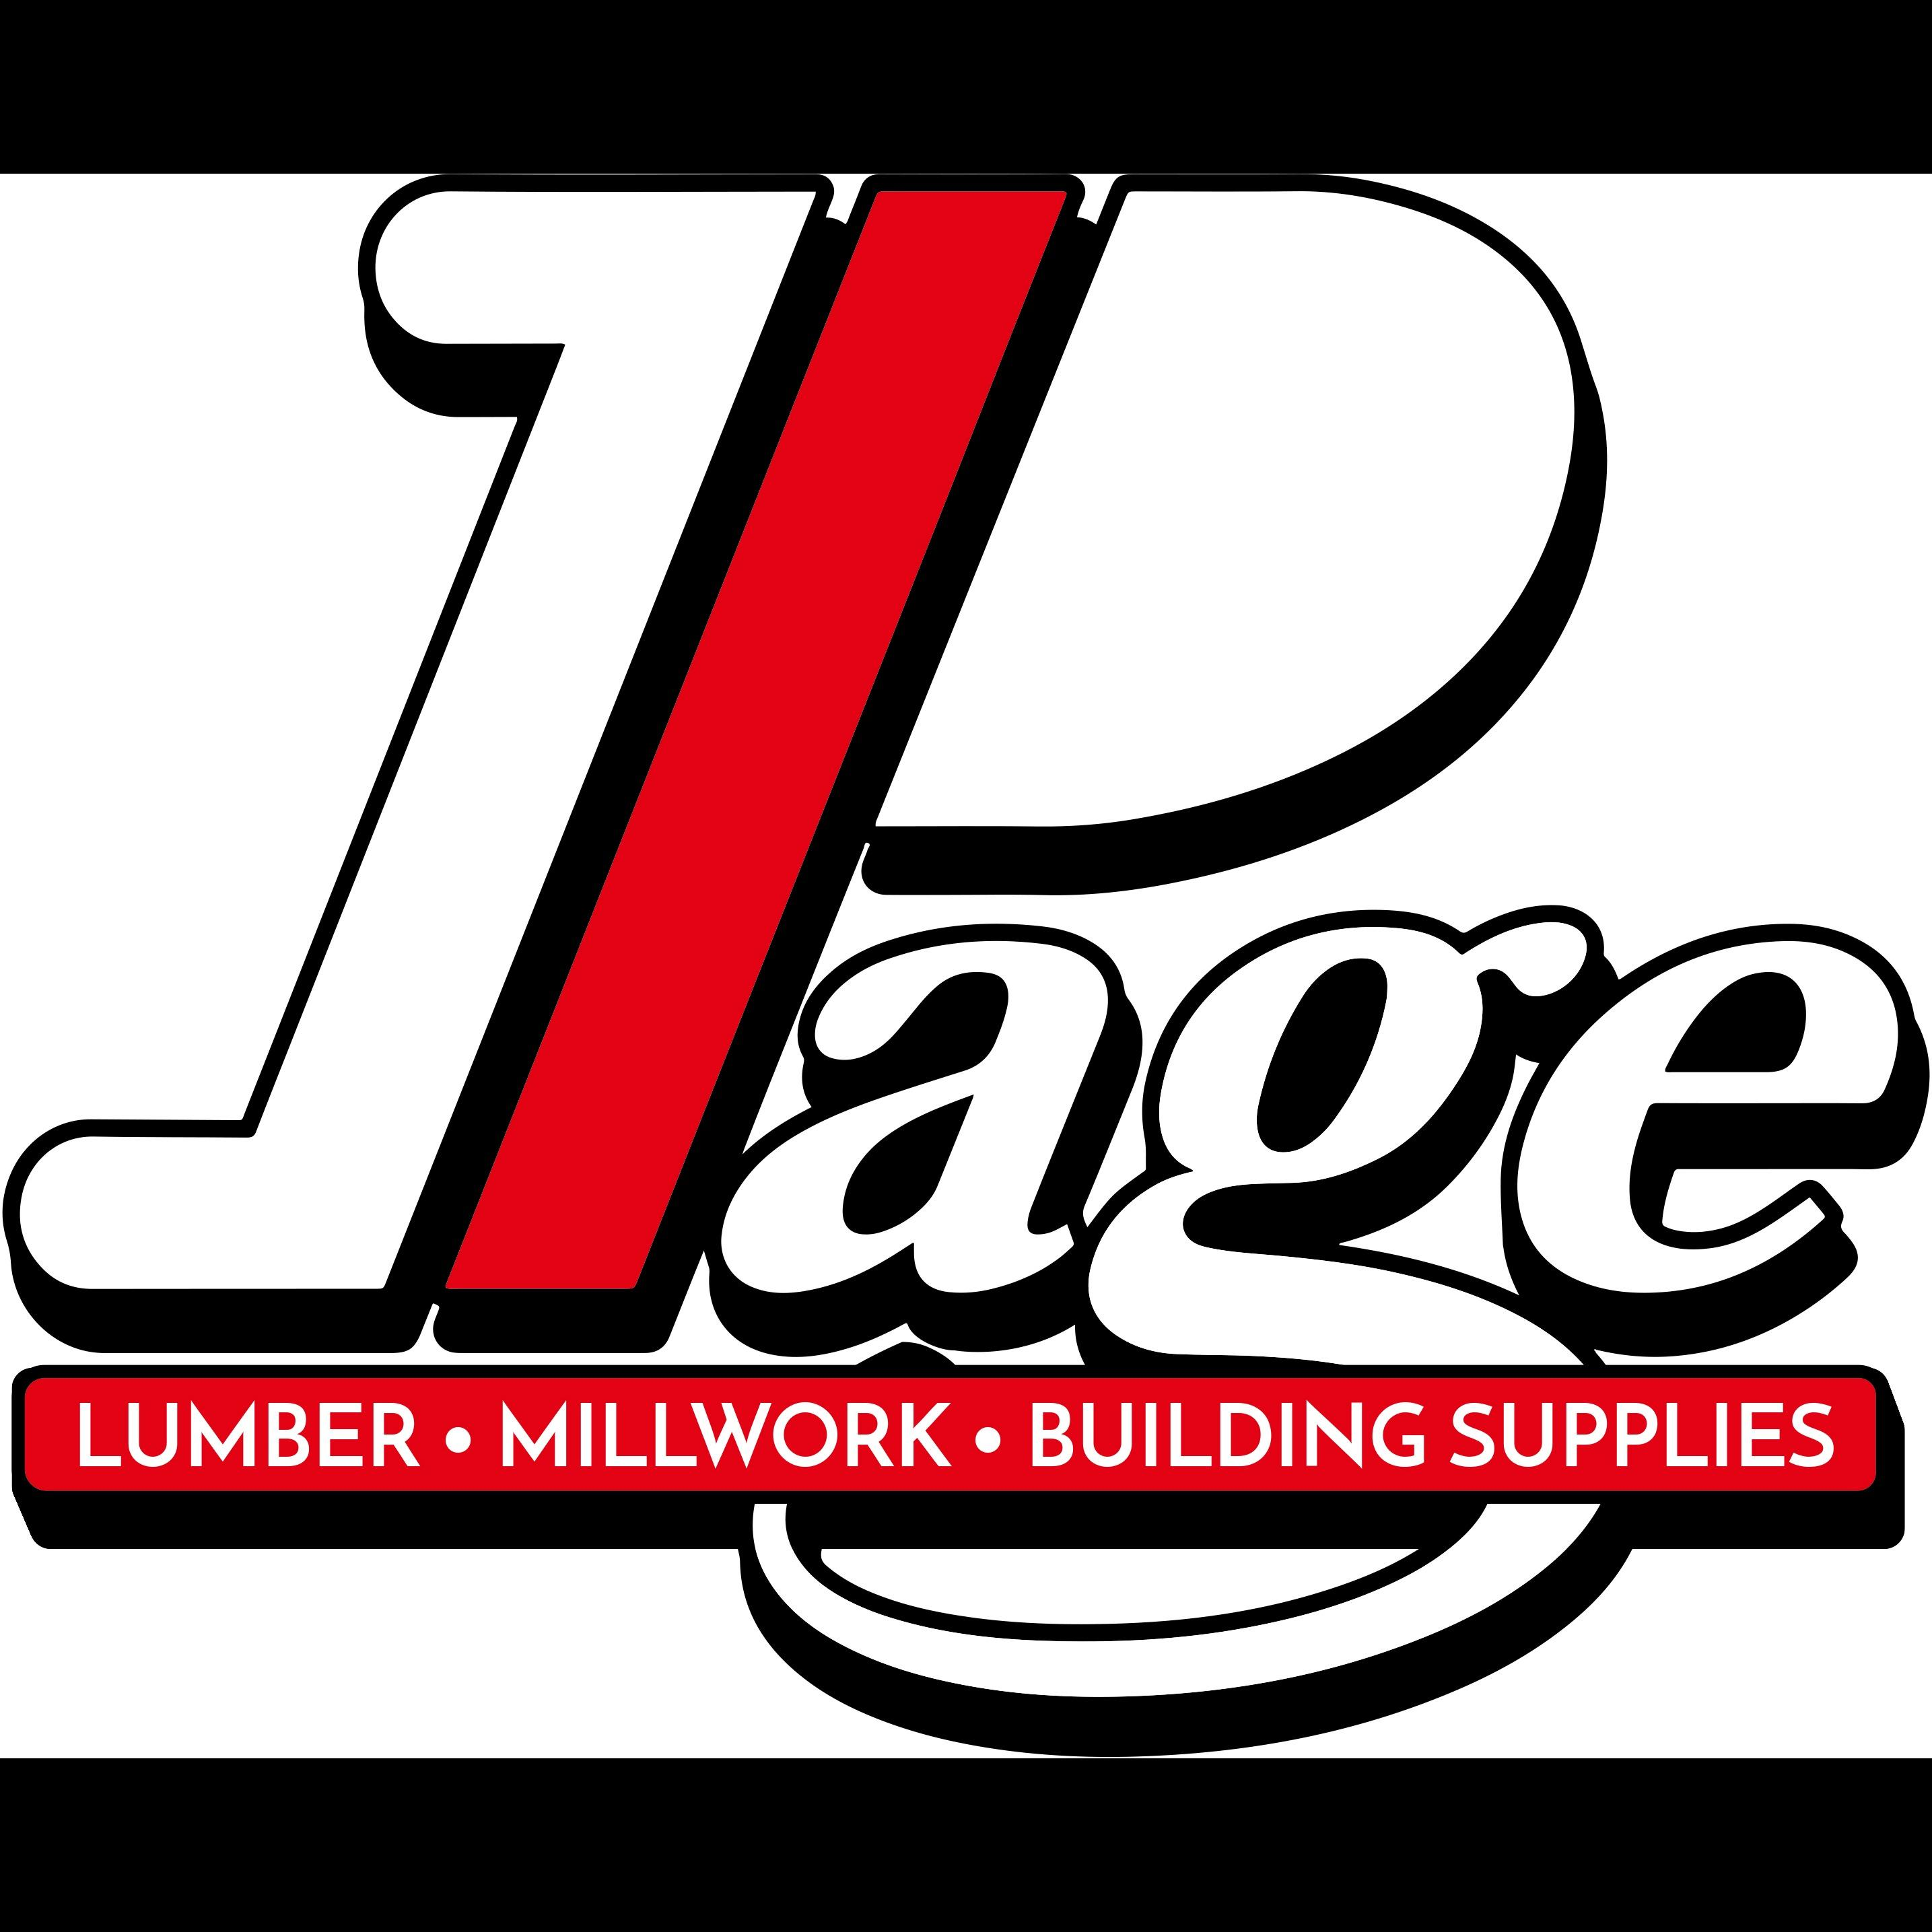 Page Lumber, Millwork and Building Supplies